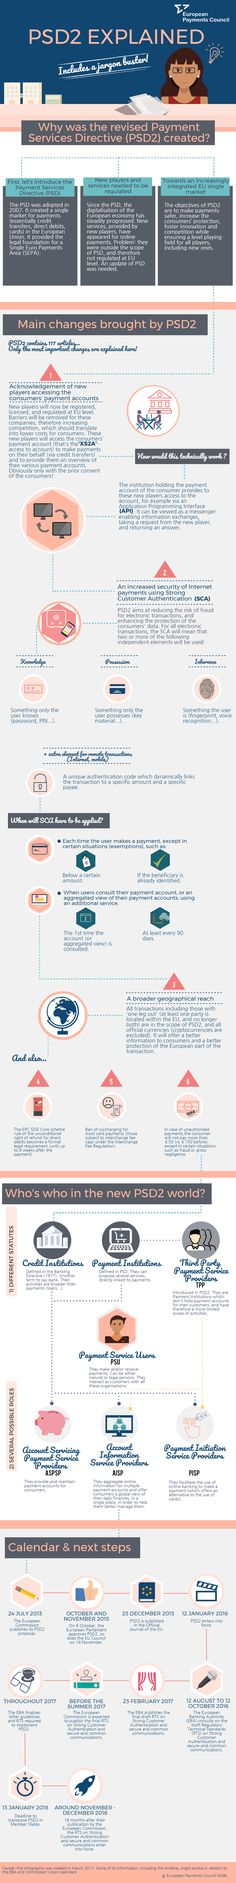 PSD2 Infographic